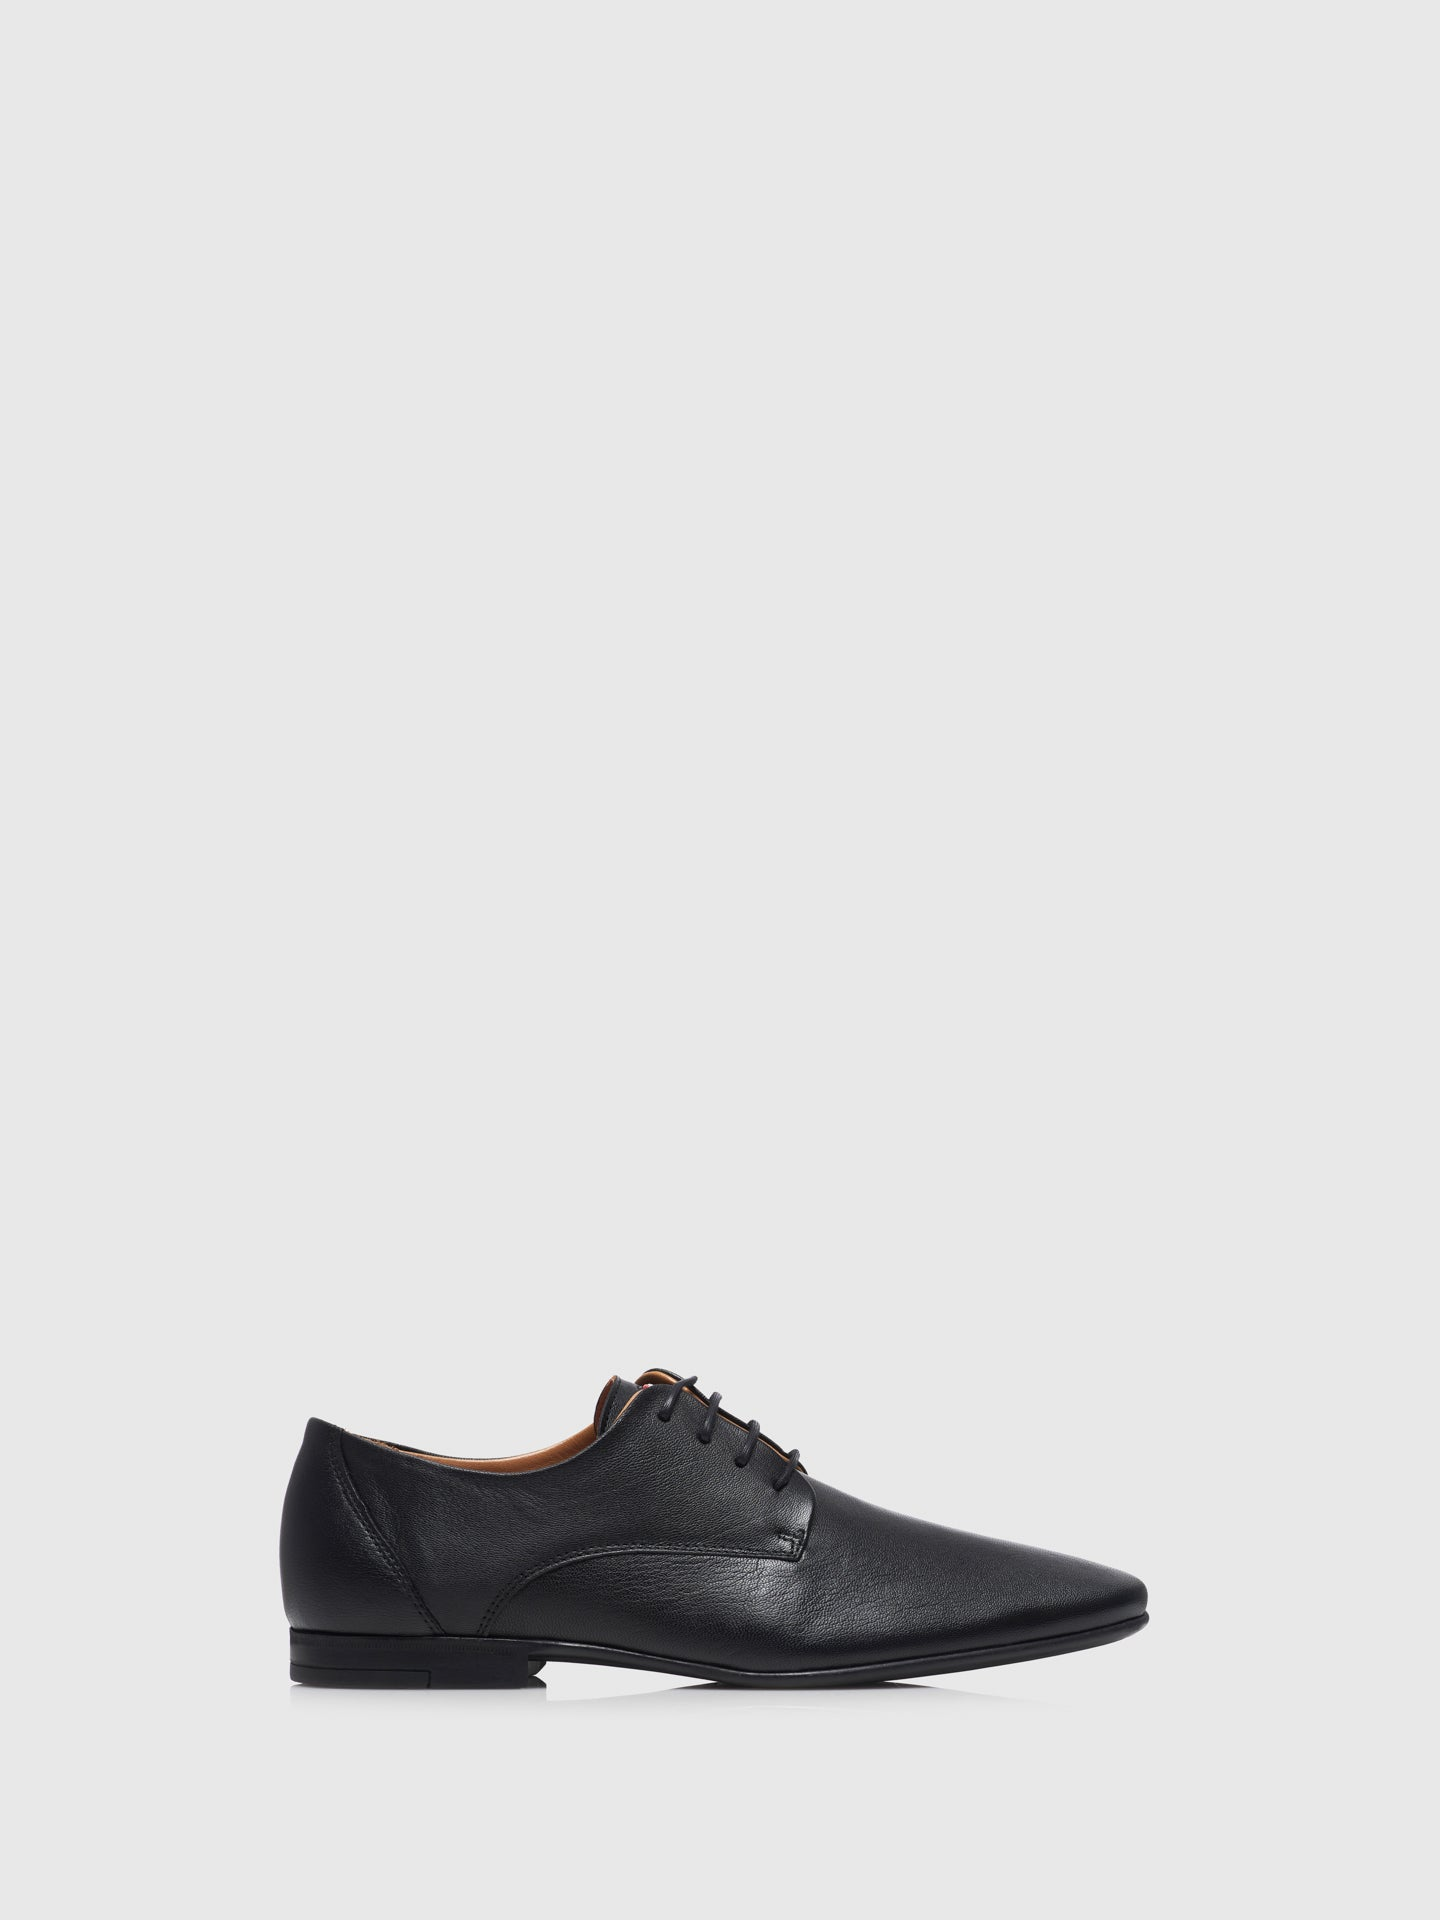 Nobrand Black Flat Shoes